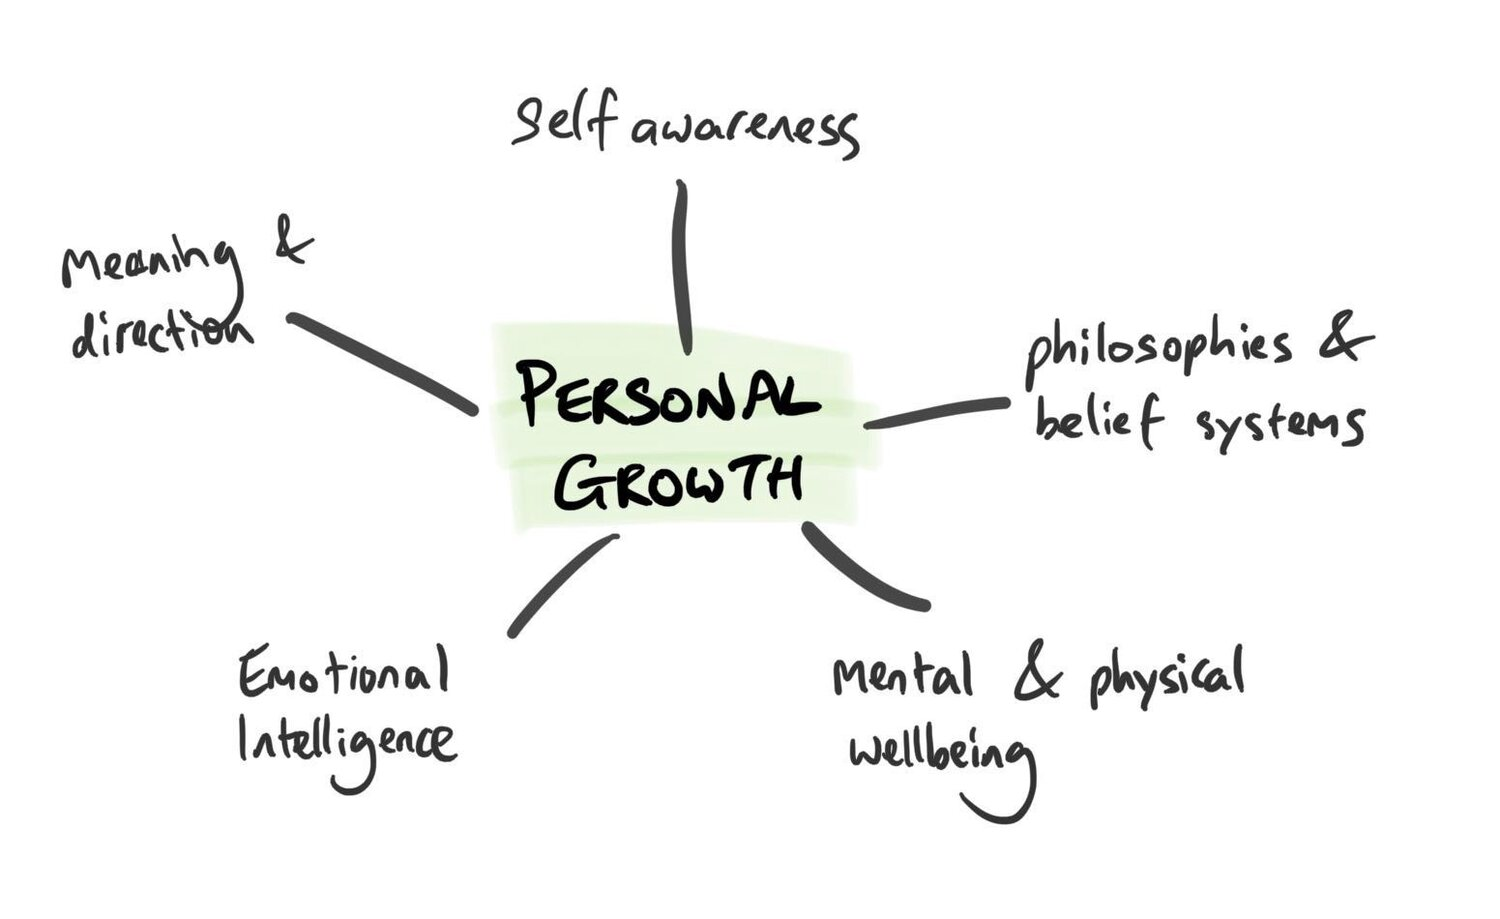 personal growth.jpeg